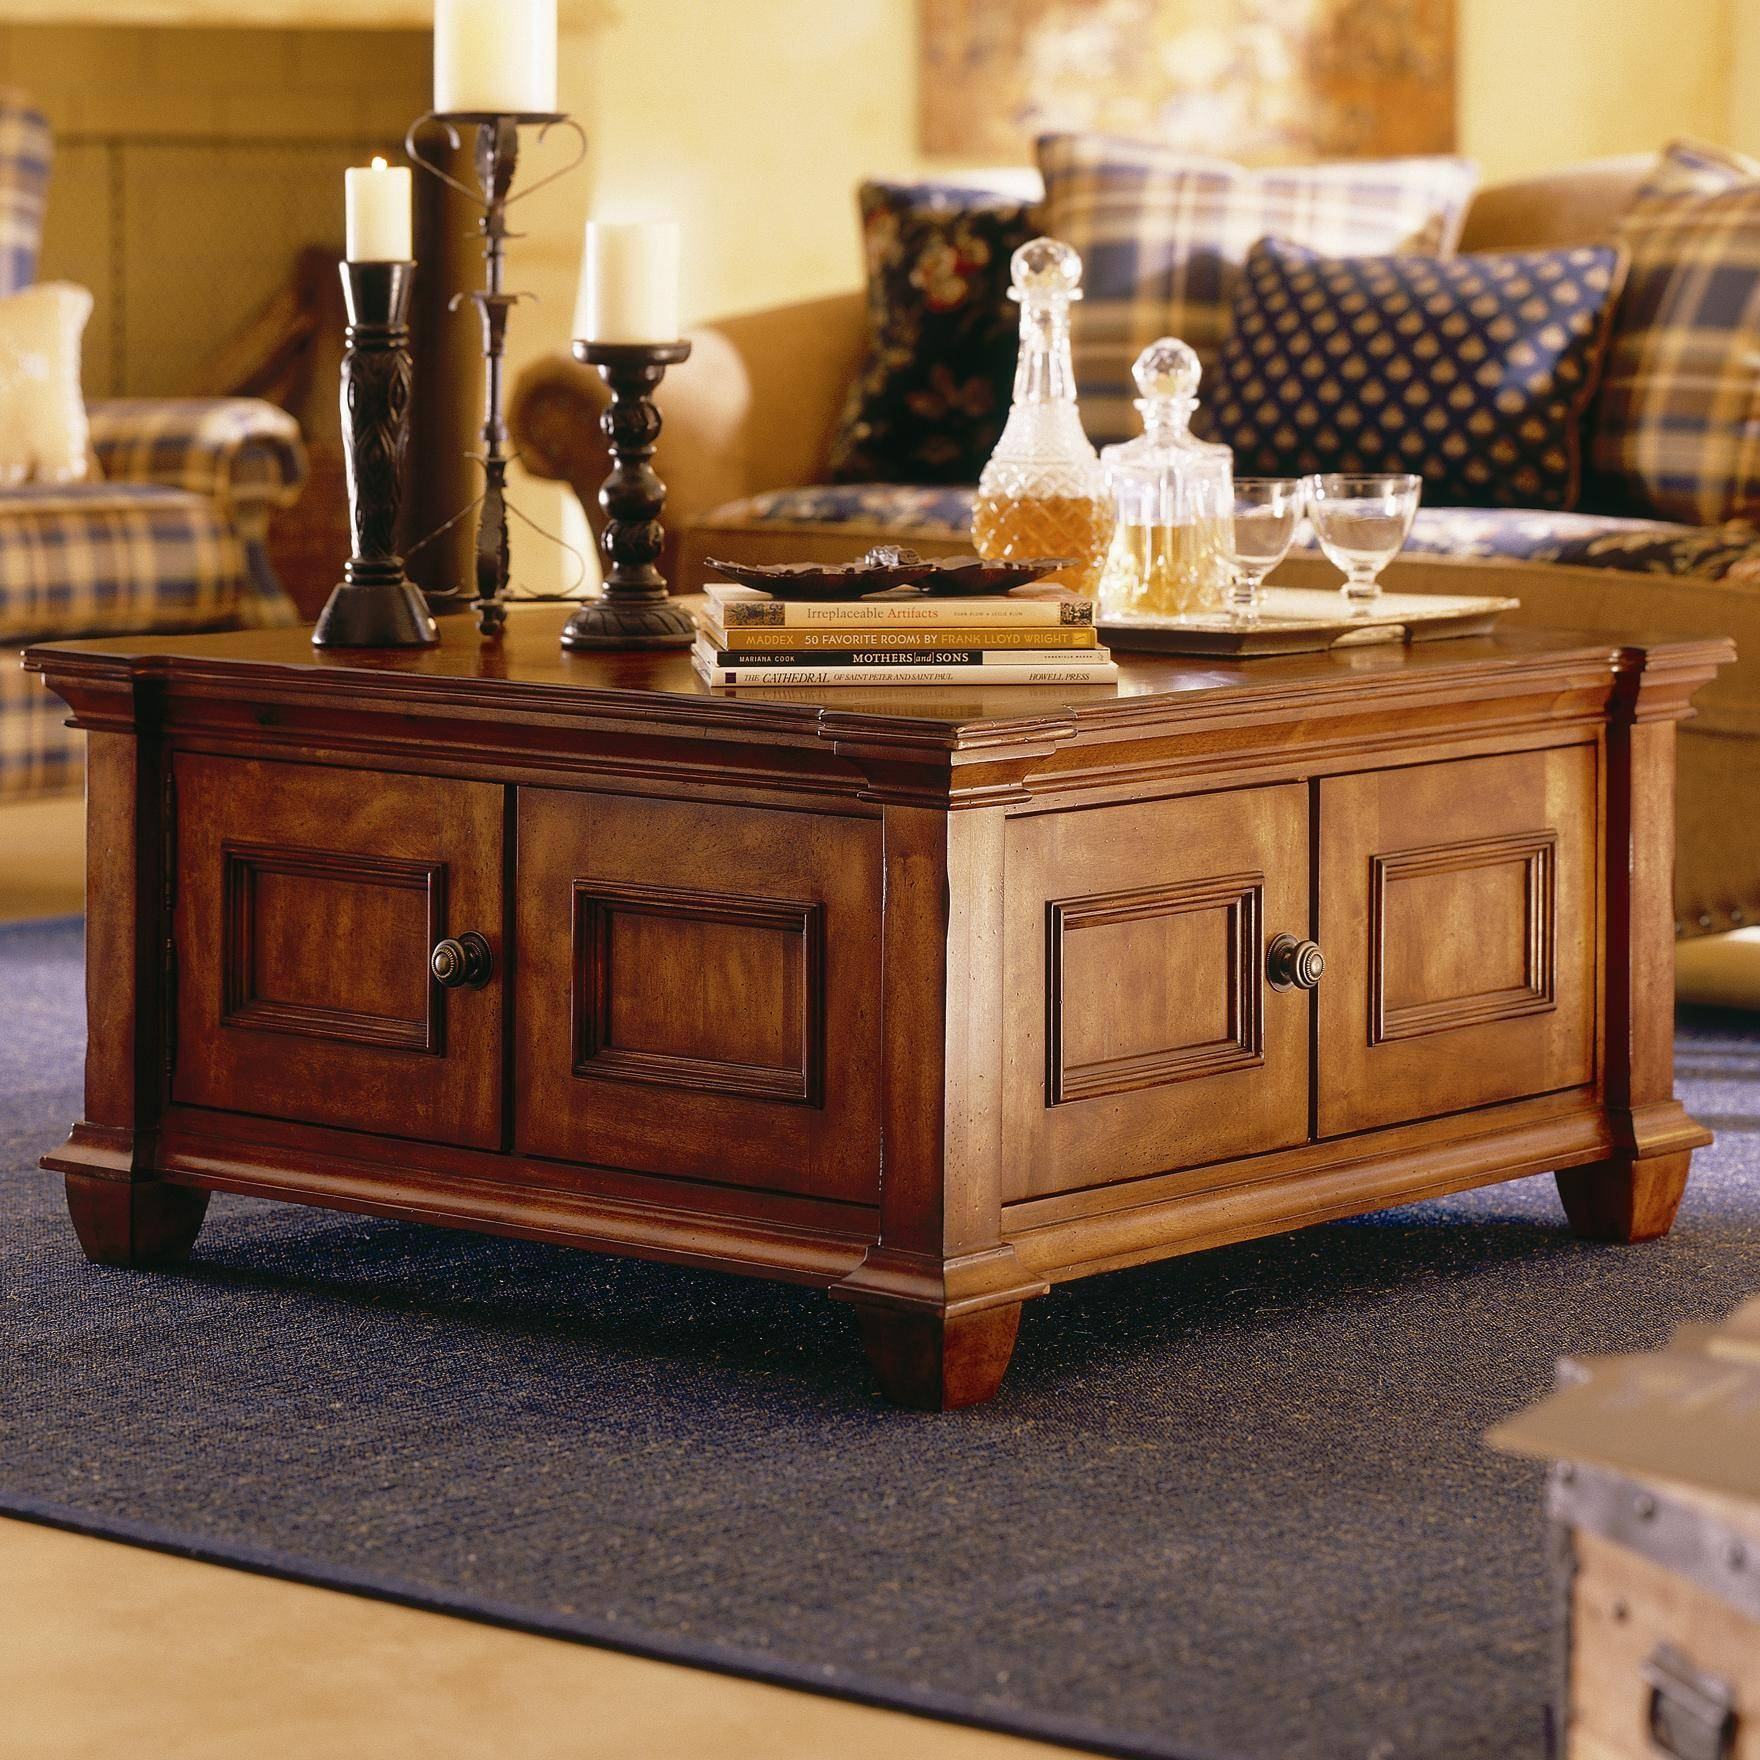 Square Wooden Coffee Table With Storage for Wooden Coffee Tables With Storage (Image 27 of 30)